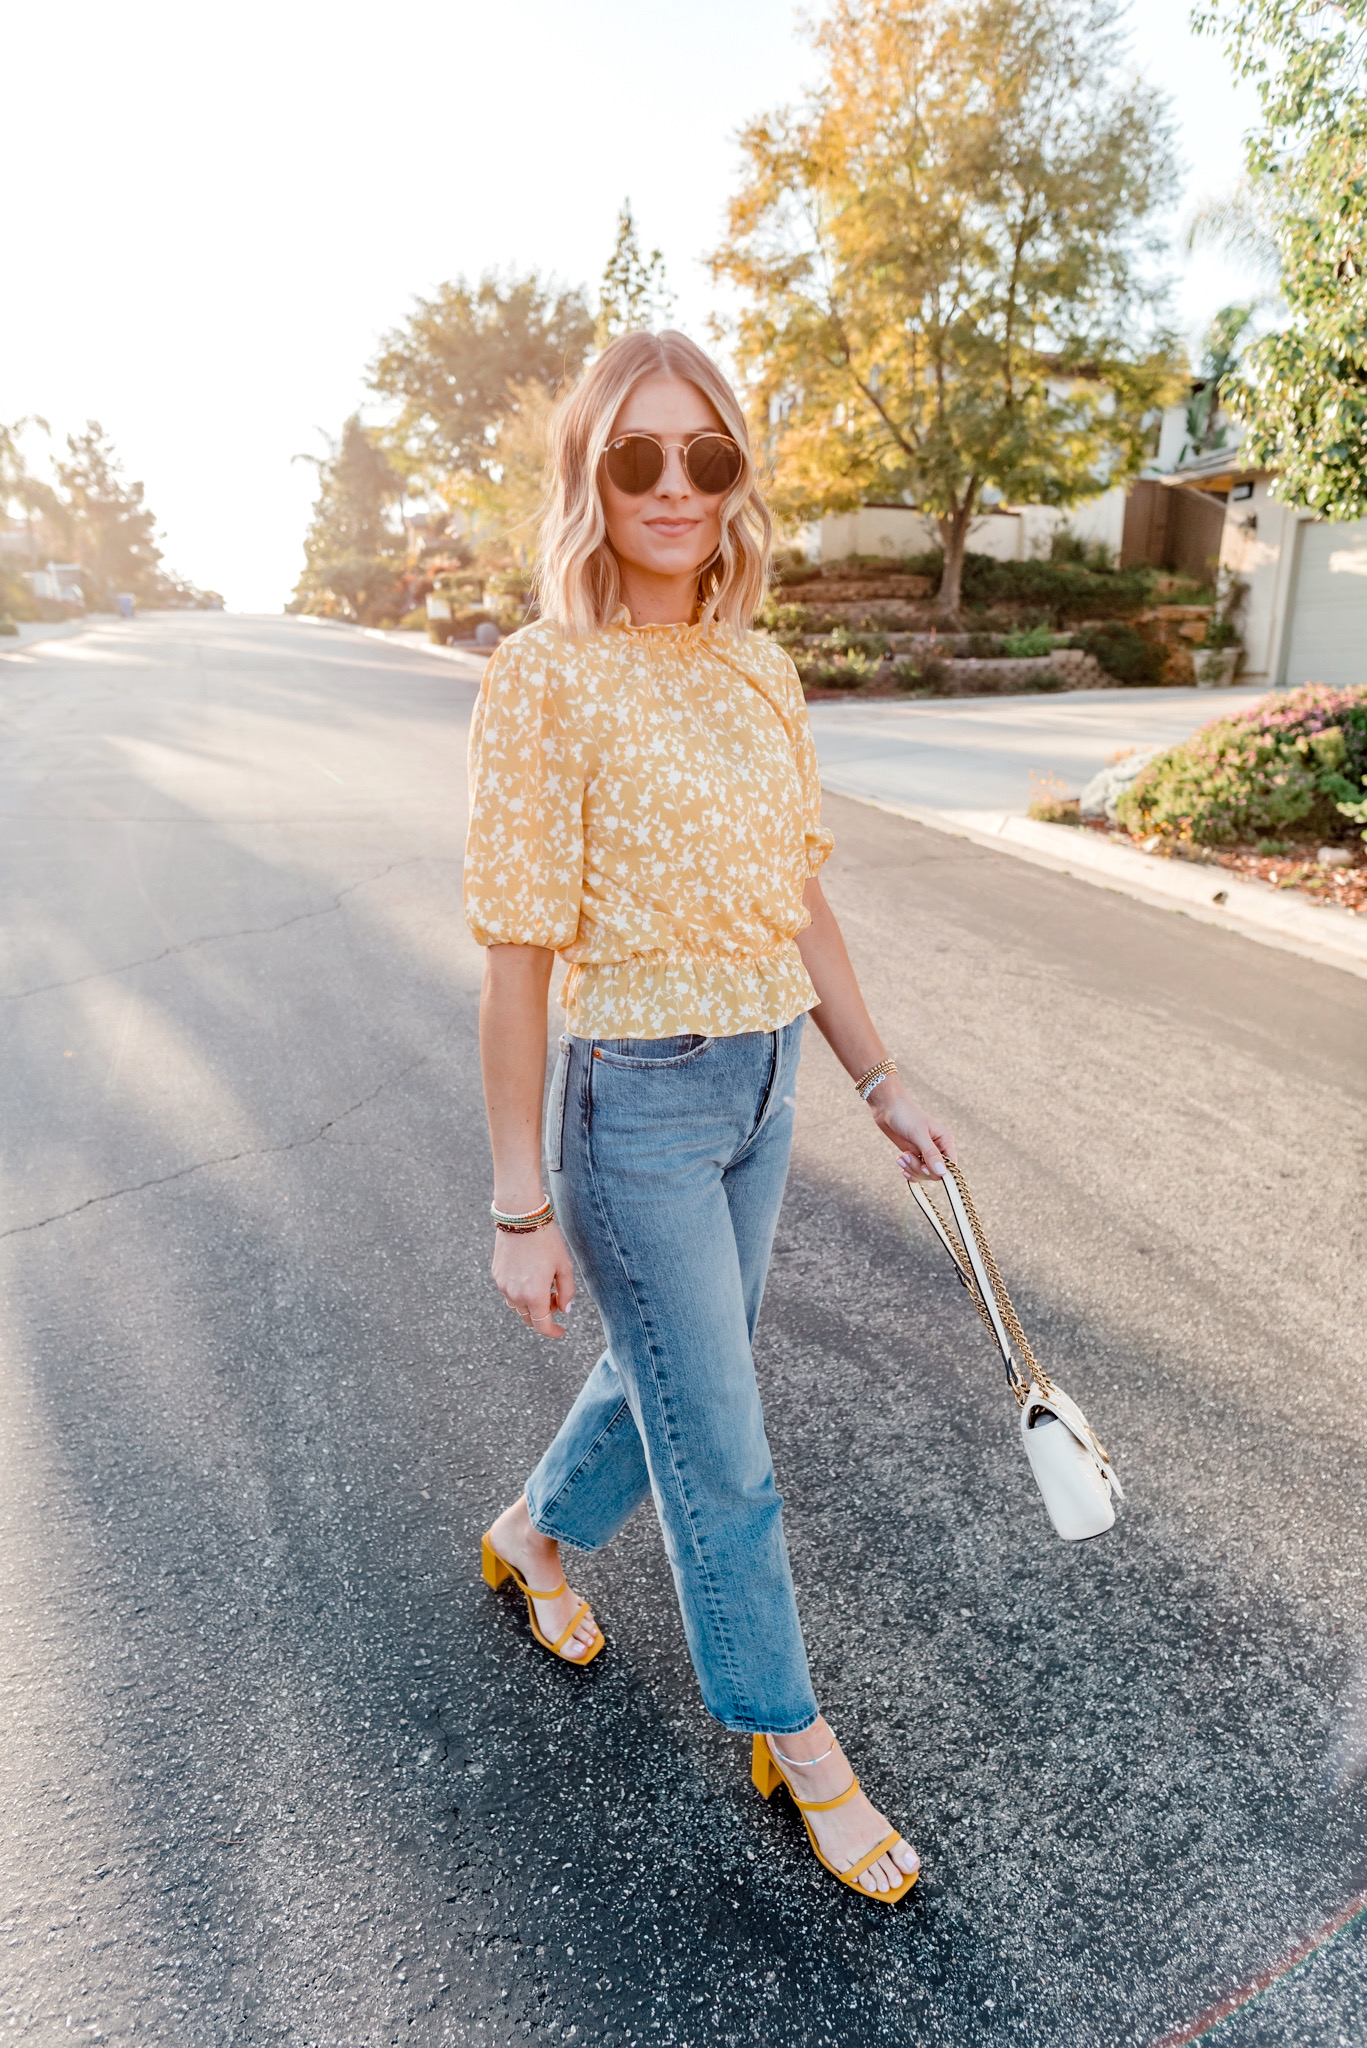 Items Bought in March by popular San Diego life and style blog, Navy Grace: image of a woman standing in a road and wearing a ShopBop BB Dakota Printed Bubble Top, ShopBop Levi's Ribcage Straight Ankle Jeans, Nordstrom 51mm Aviator Sunglasses RAY-BAN, yellow sandal slide heels and Nordstrom Small Matelassé Leather Shoulder Bag GUCCI.